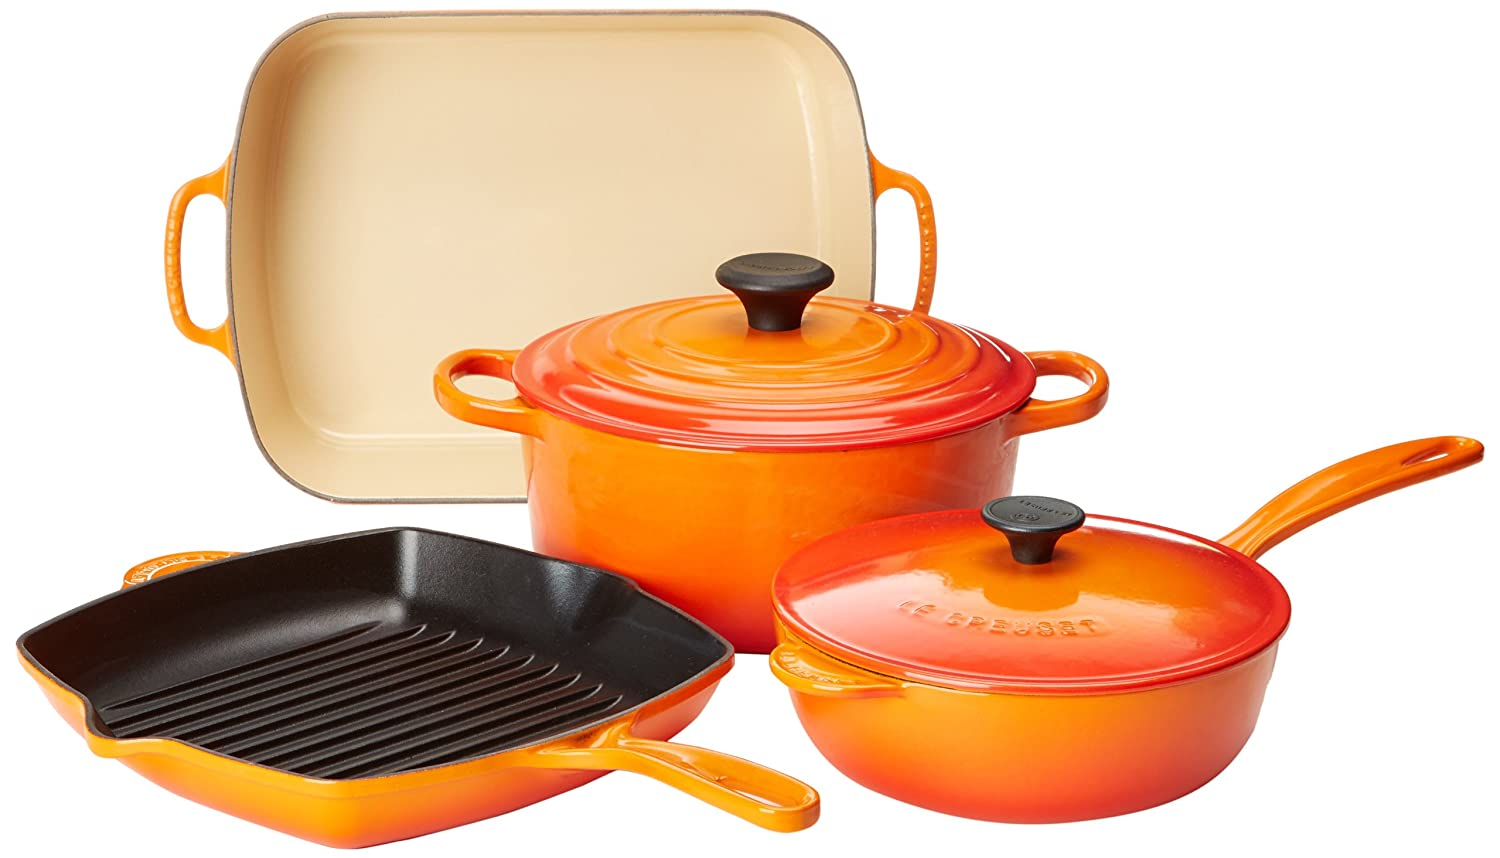 Le Creuset Cookware Flame